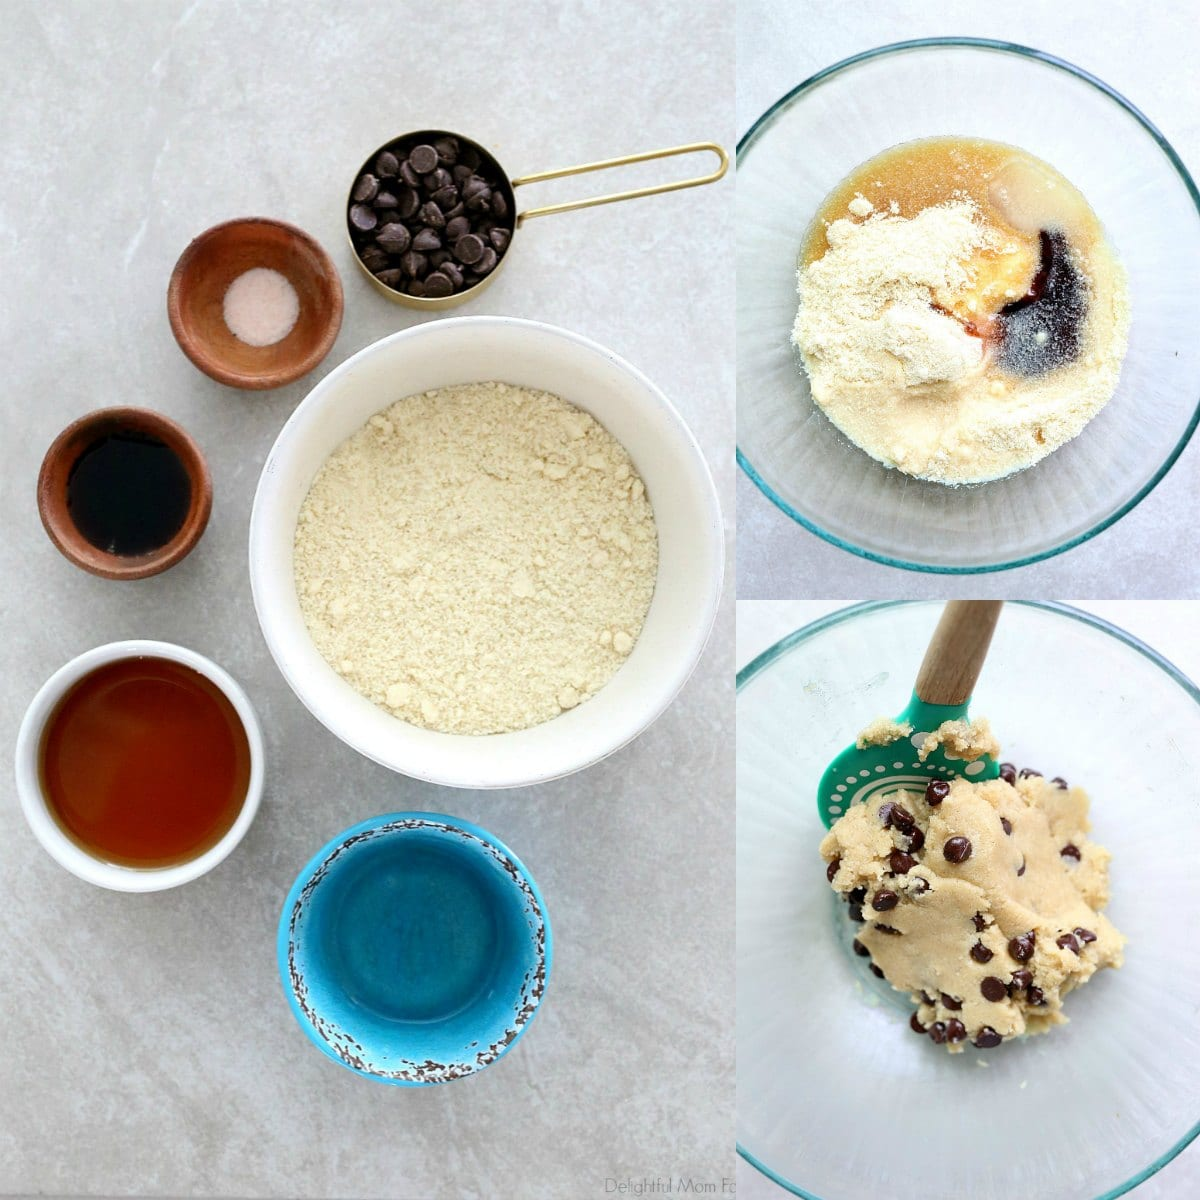 You will love making this easy, raw, edible cookie dough recipe! This egg-free version is safe to eat and the cookie dough is made from almond flour. Get creative and add mini chocolate chips or colorful sprinkles! #rawediblecookiedough #ediblecookiedough #ediblerawdough #ediblechocolatechipcookiedough #treats #sweets #dessert #healthy #withoutflour #flourless #edible #cookiedough #glutenfree | Recipe at Delightful Mom Food